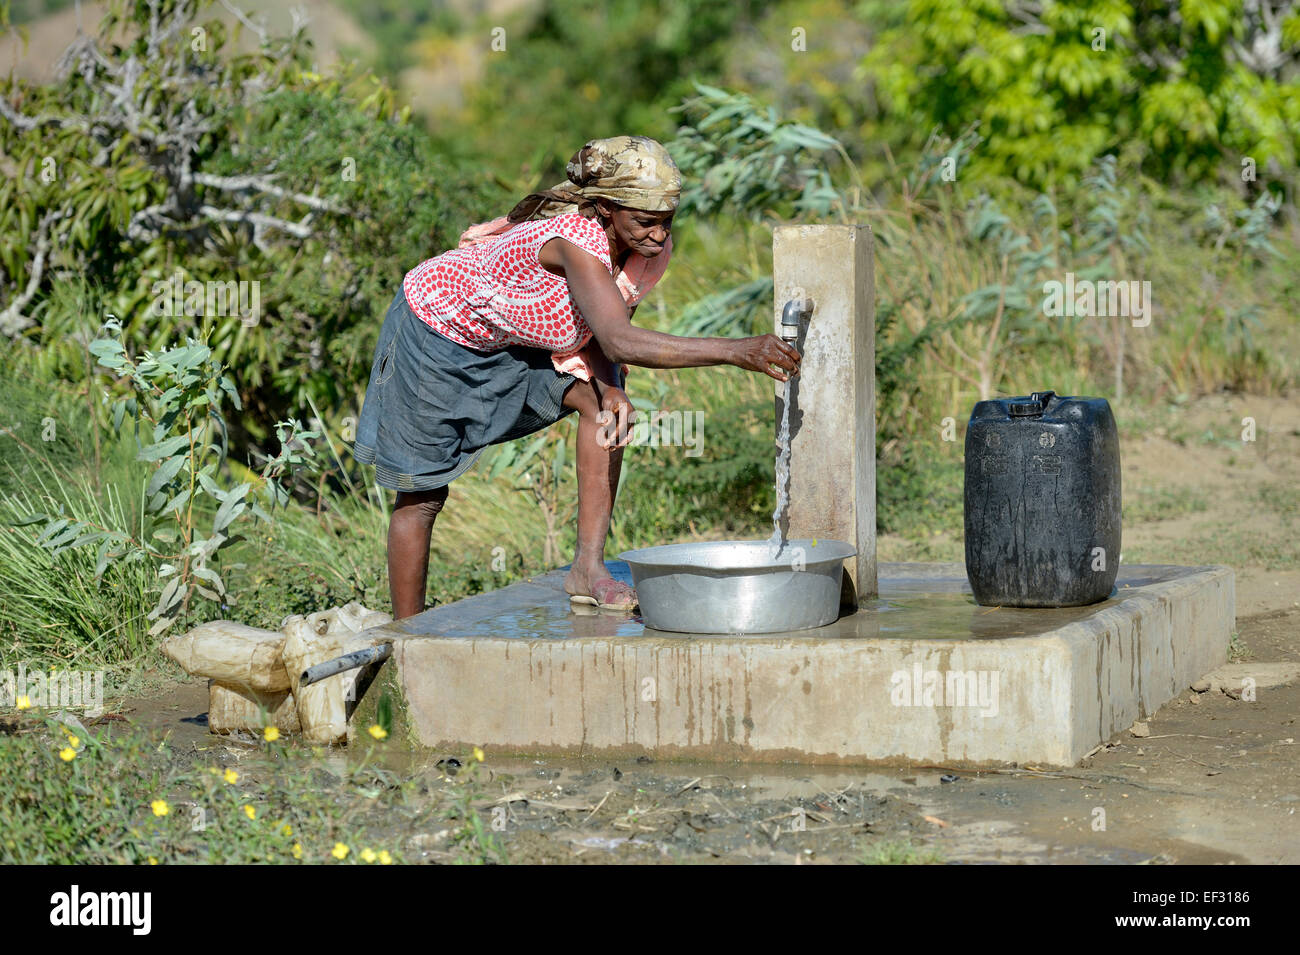 Elderly woman at a water supply well, Ridore, La Vallee, Sud-Est Department, Haiti - Stock Image